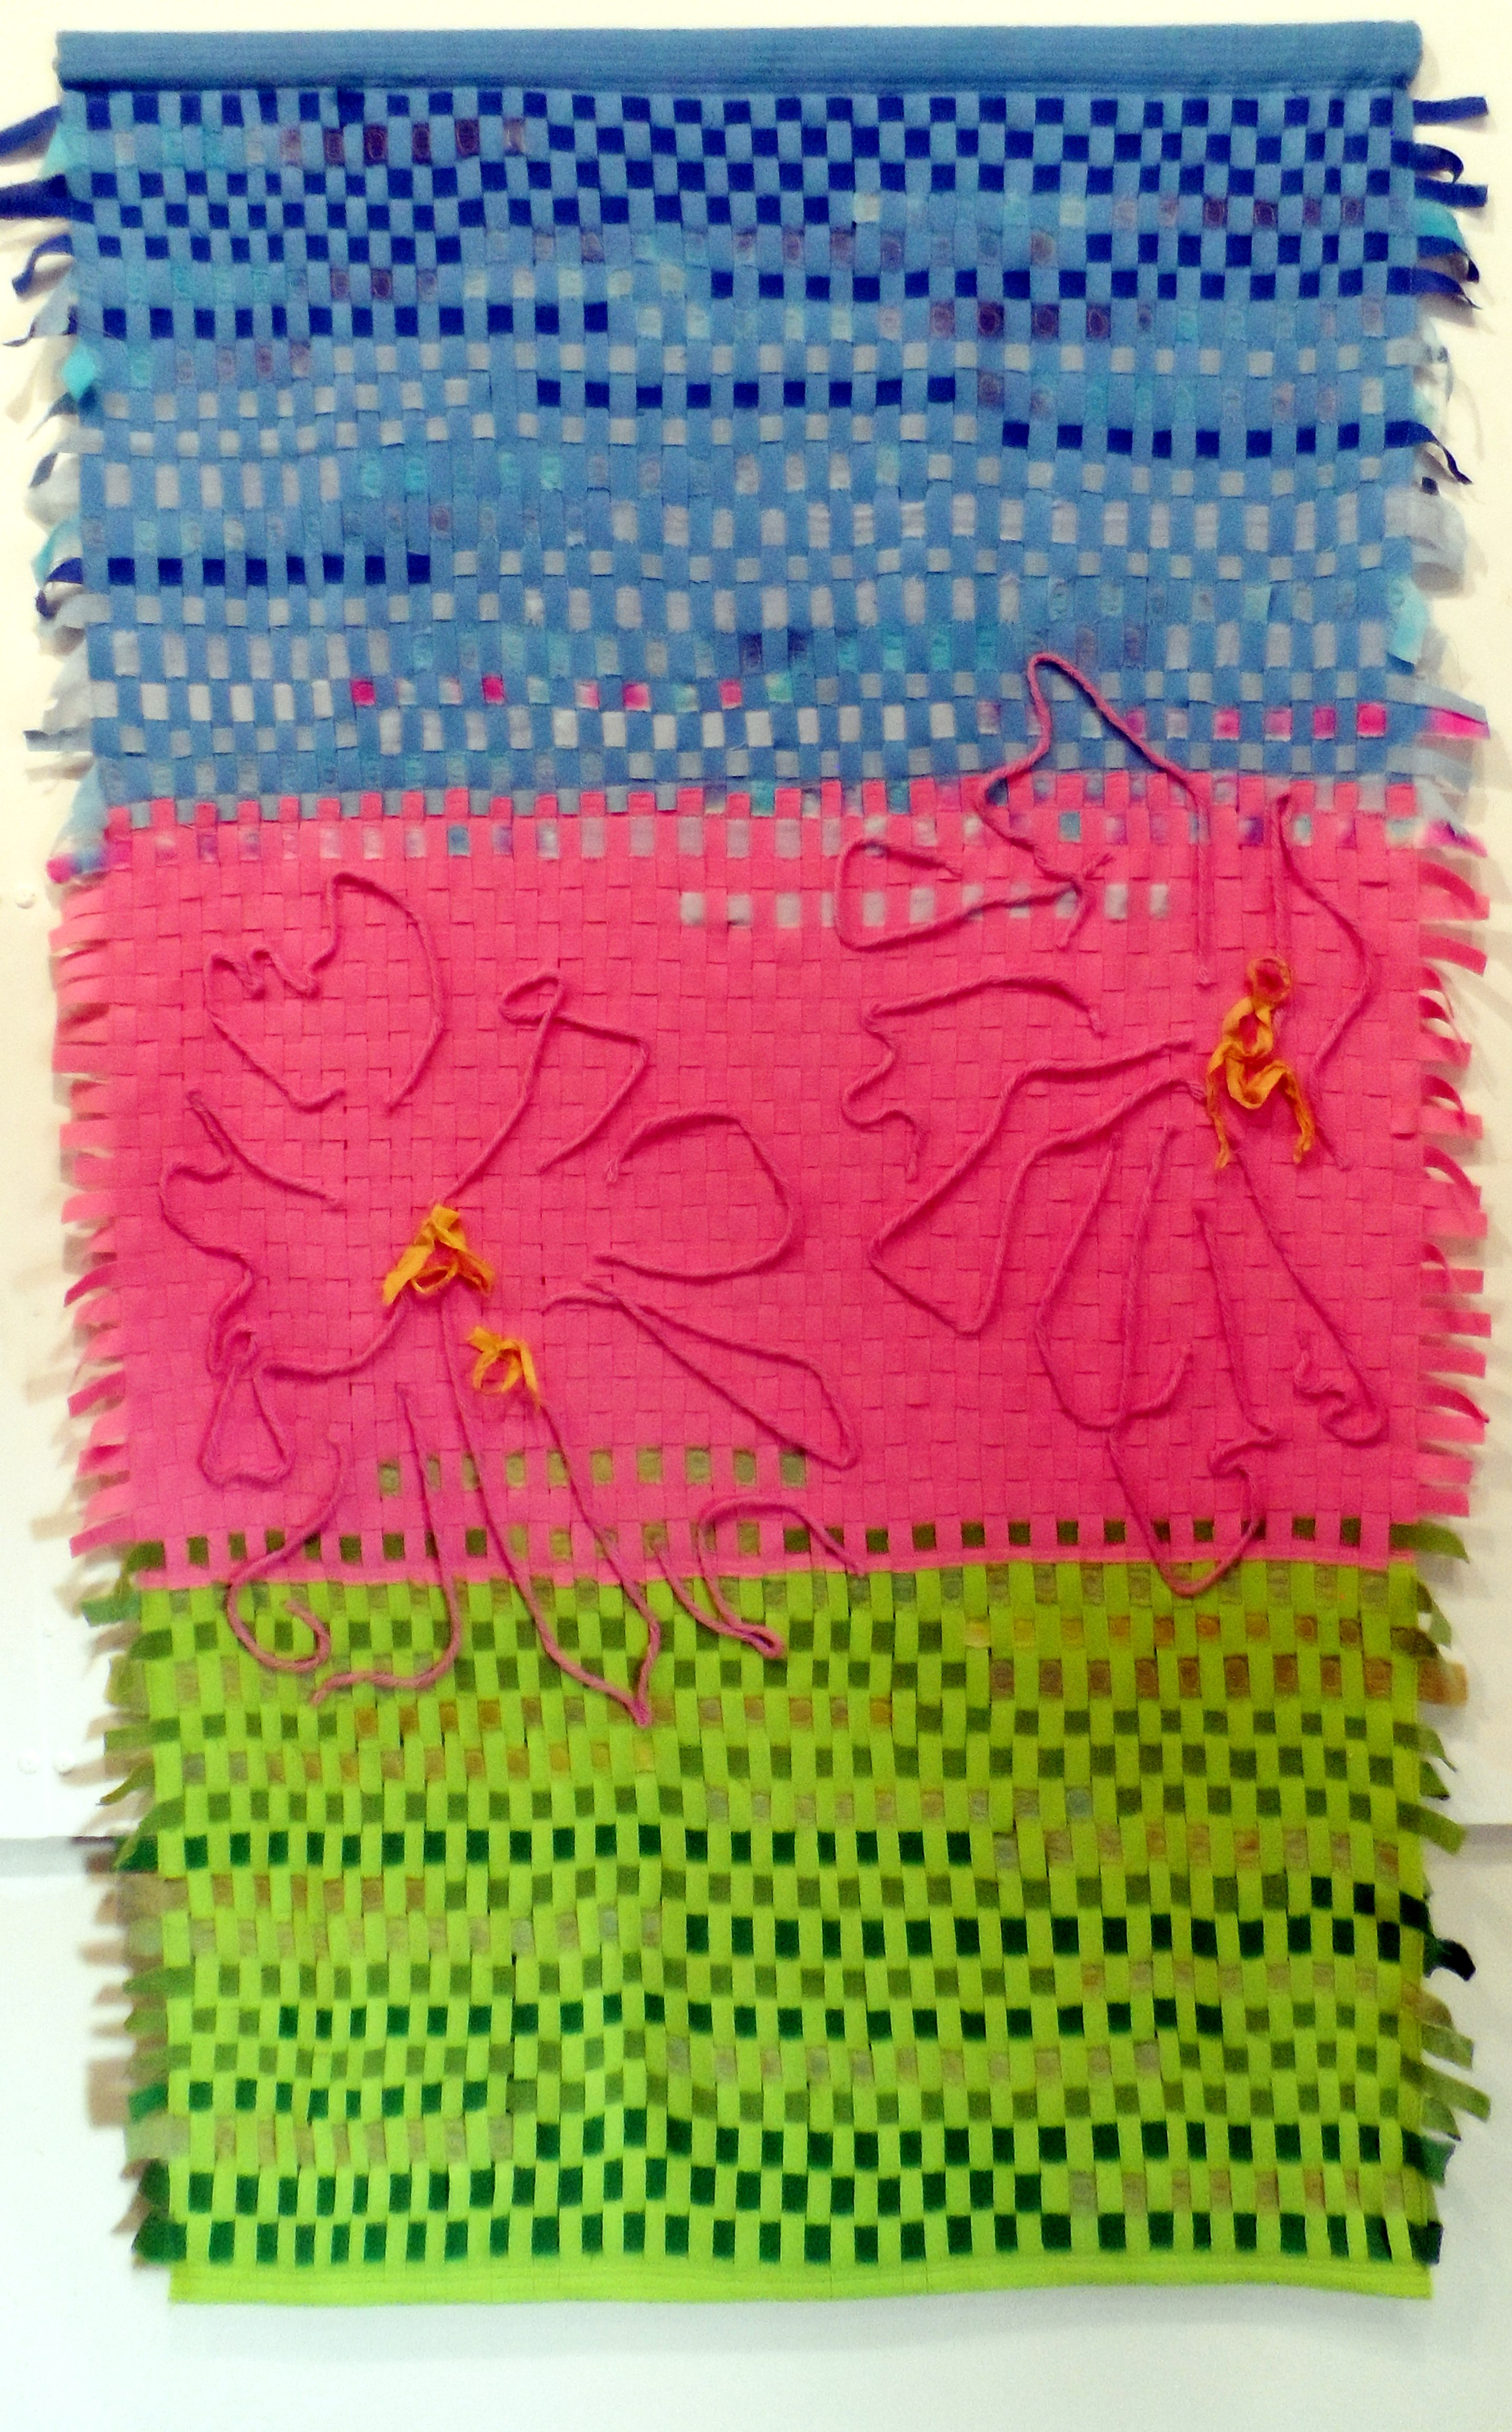 SPRING by Janet Wilkinson, weave & stitch, Re-View Textile Group, Frodsham 2019